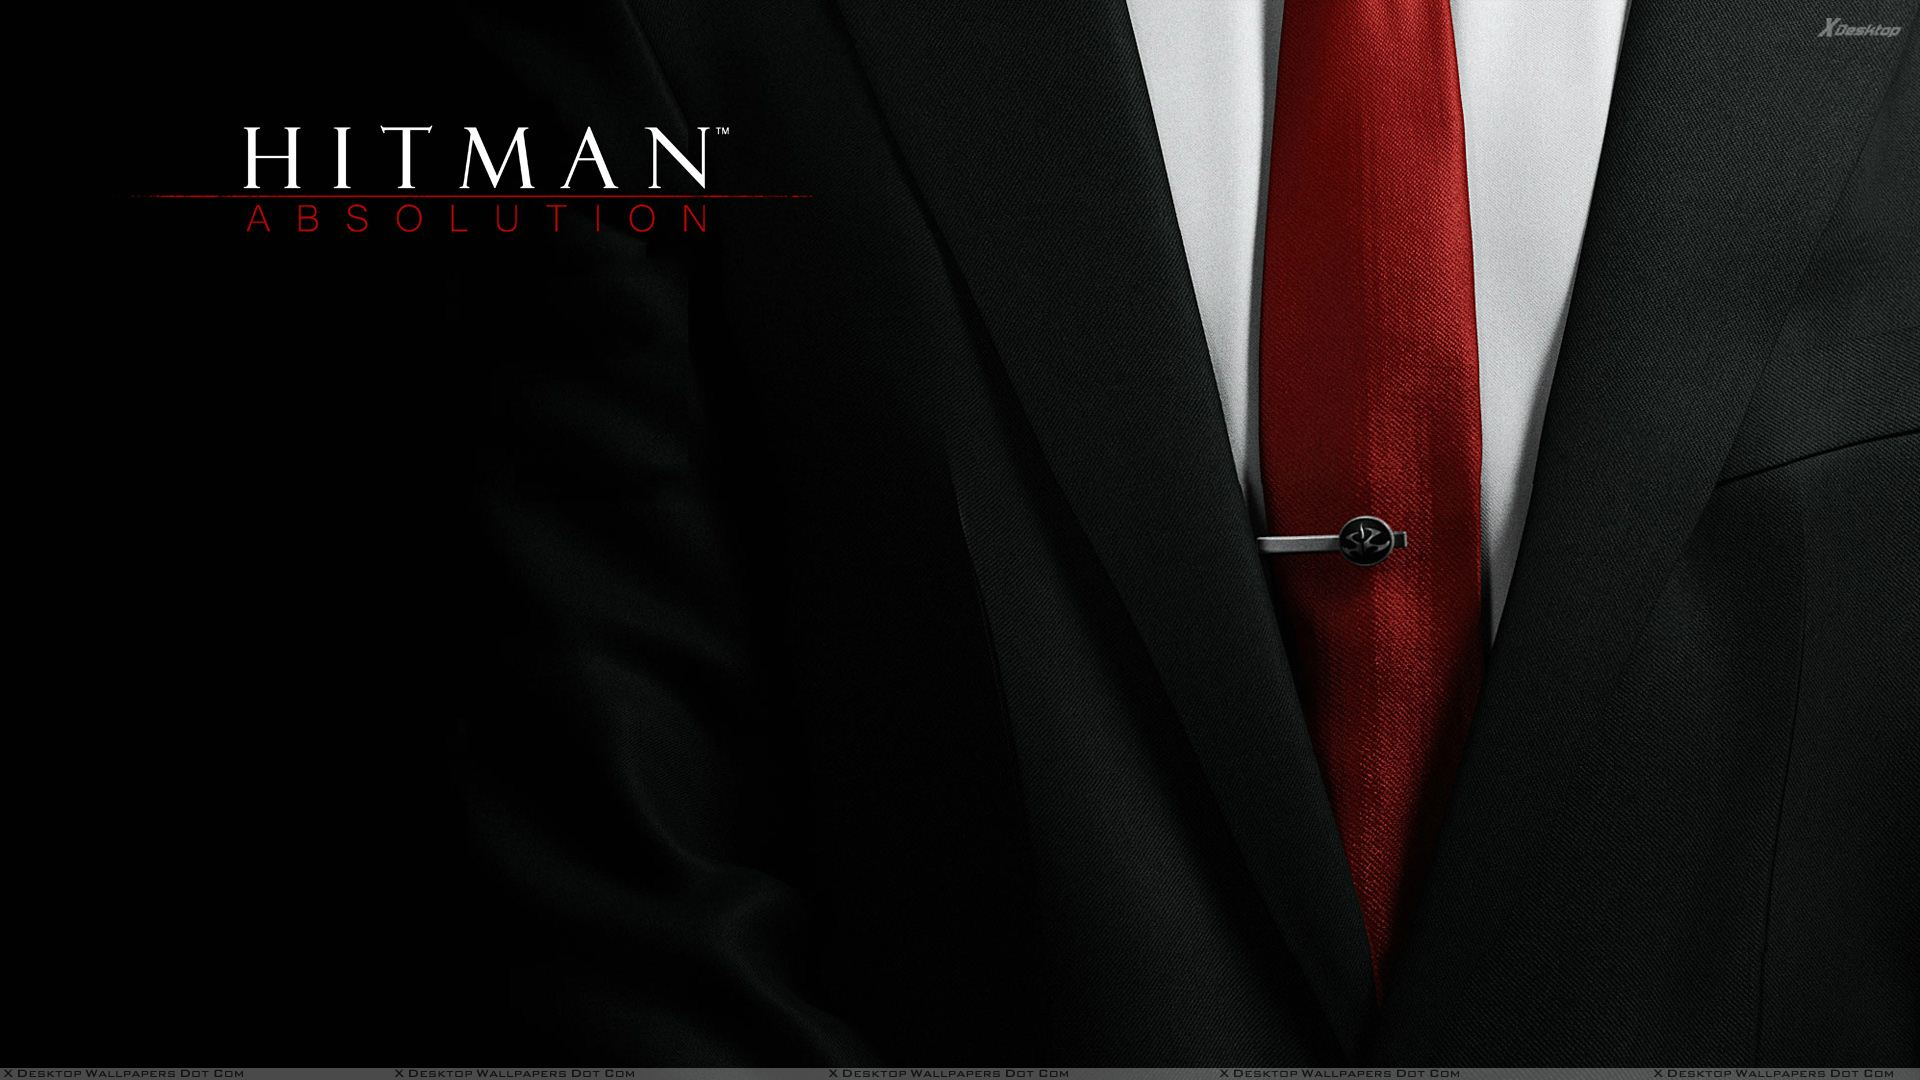 hitman absolution � red tie wallpaper